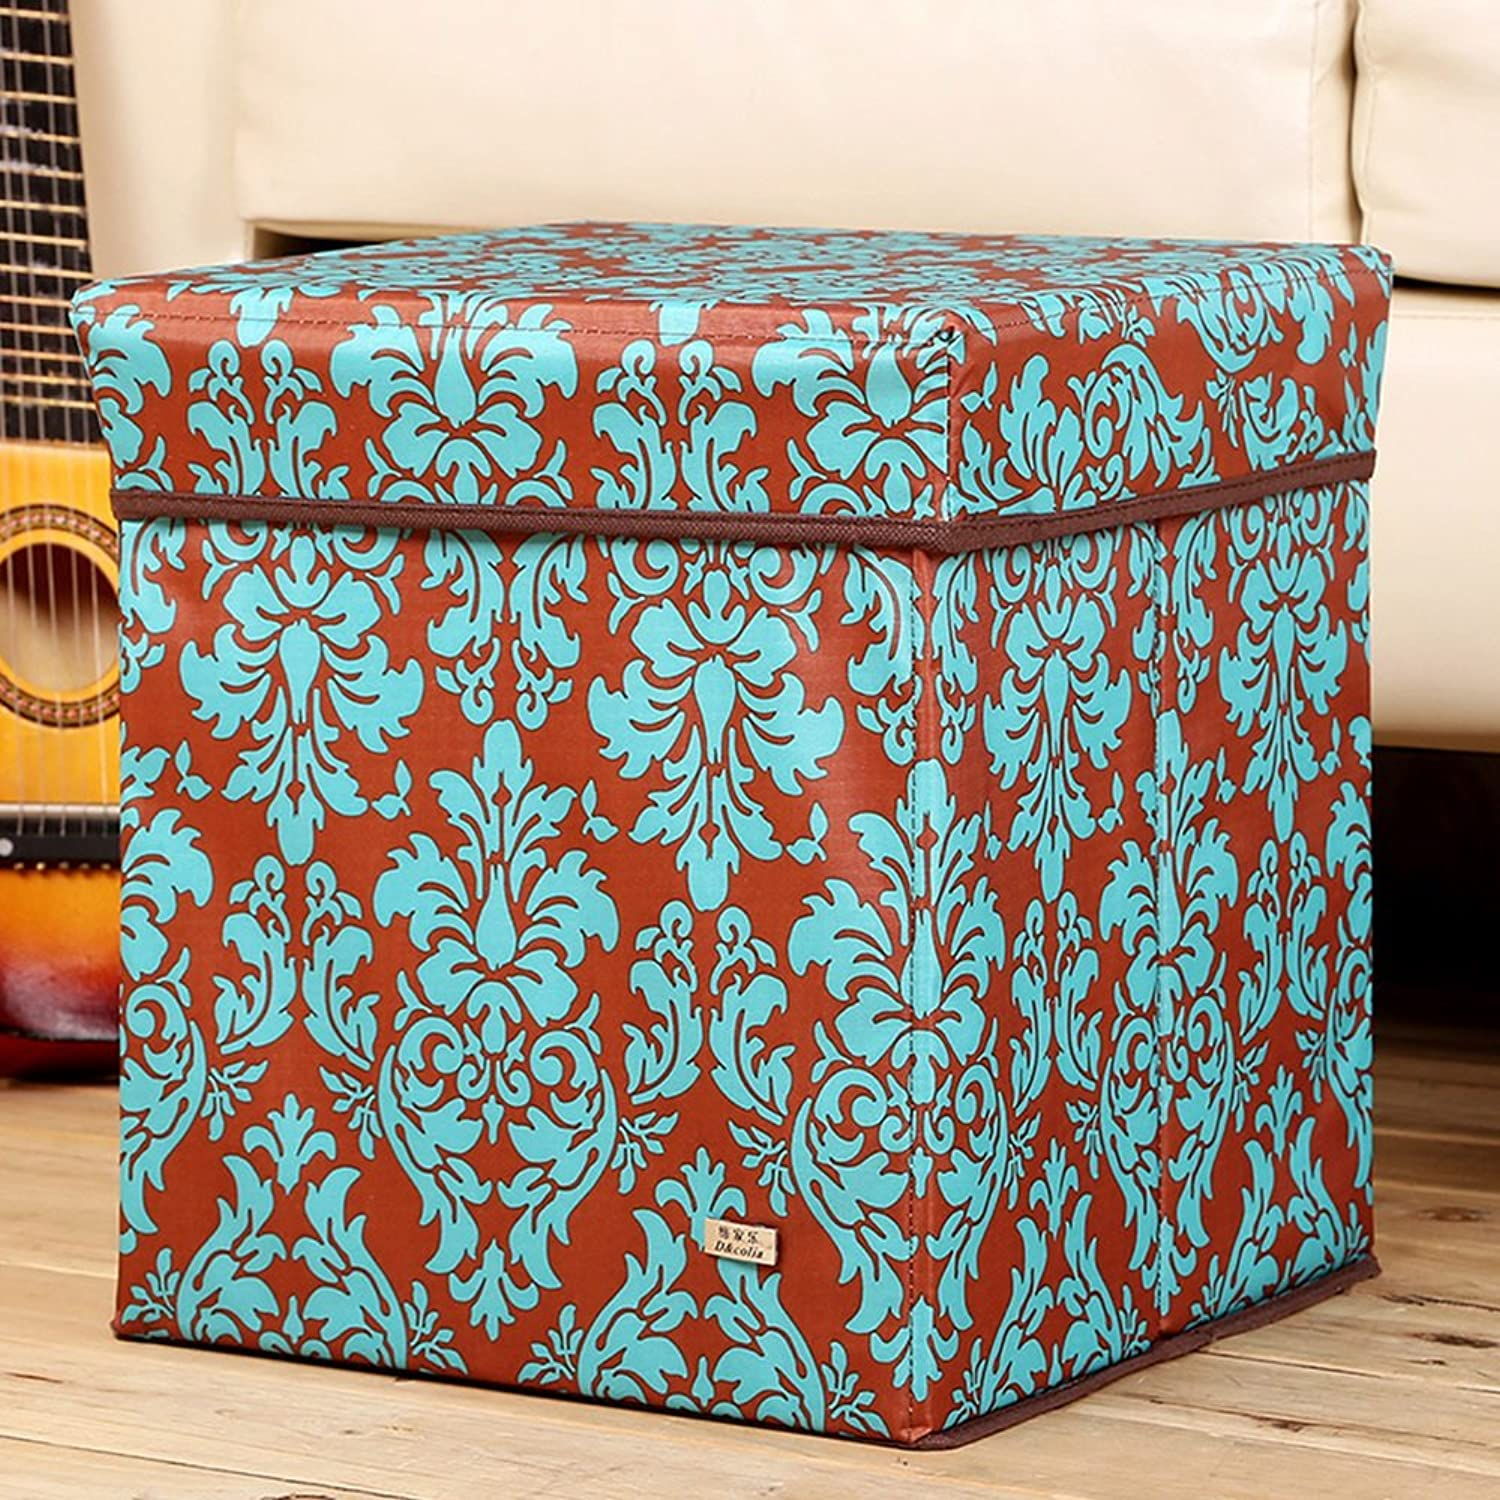 Oxford Cloth Storage Stool, Printed Covered Storage Box, shoes Bench, Folding Storage Box, Storage Box (color   B)